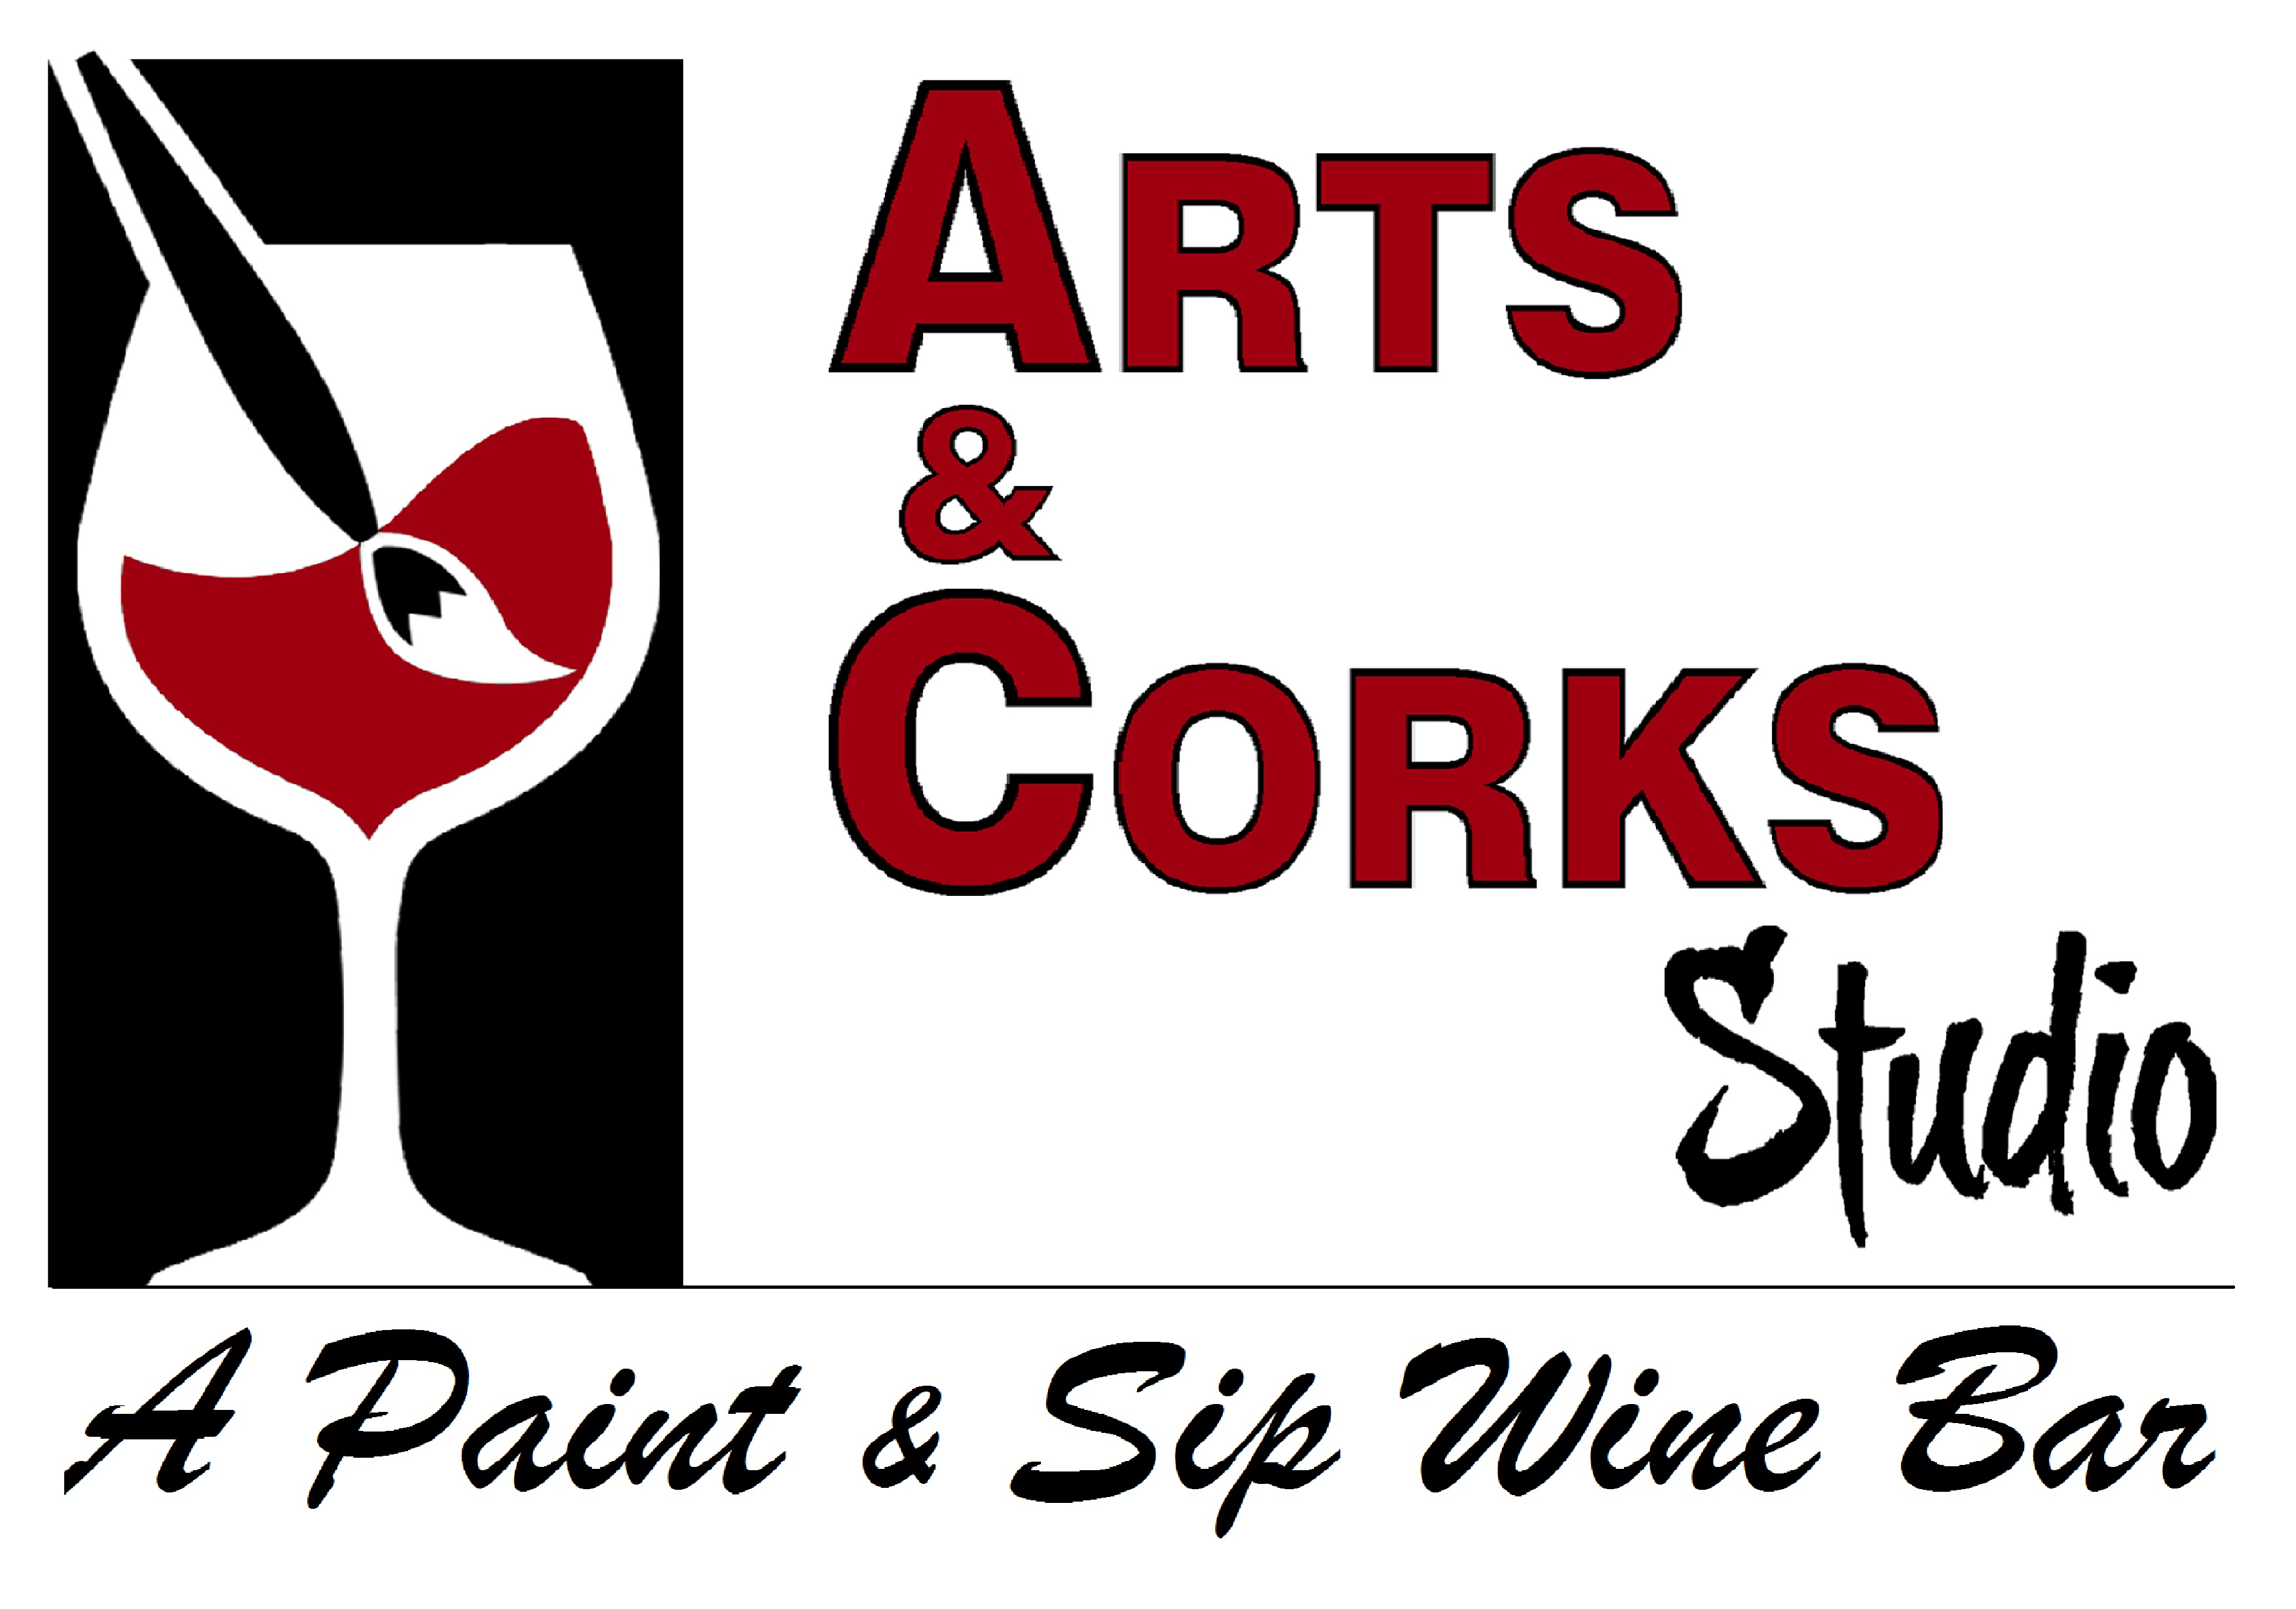 rezclick arts and corks studio classes